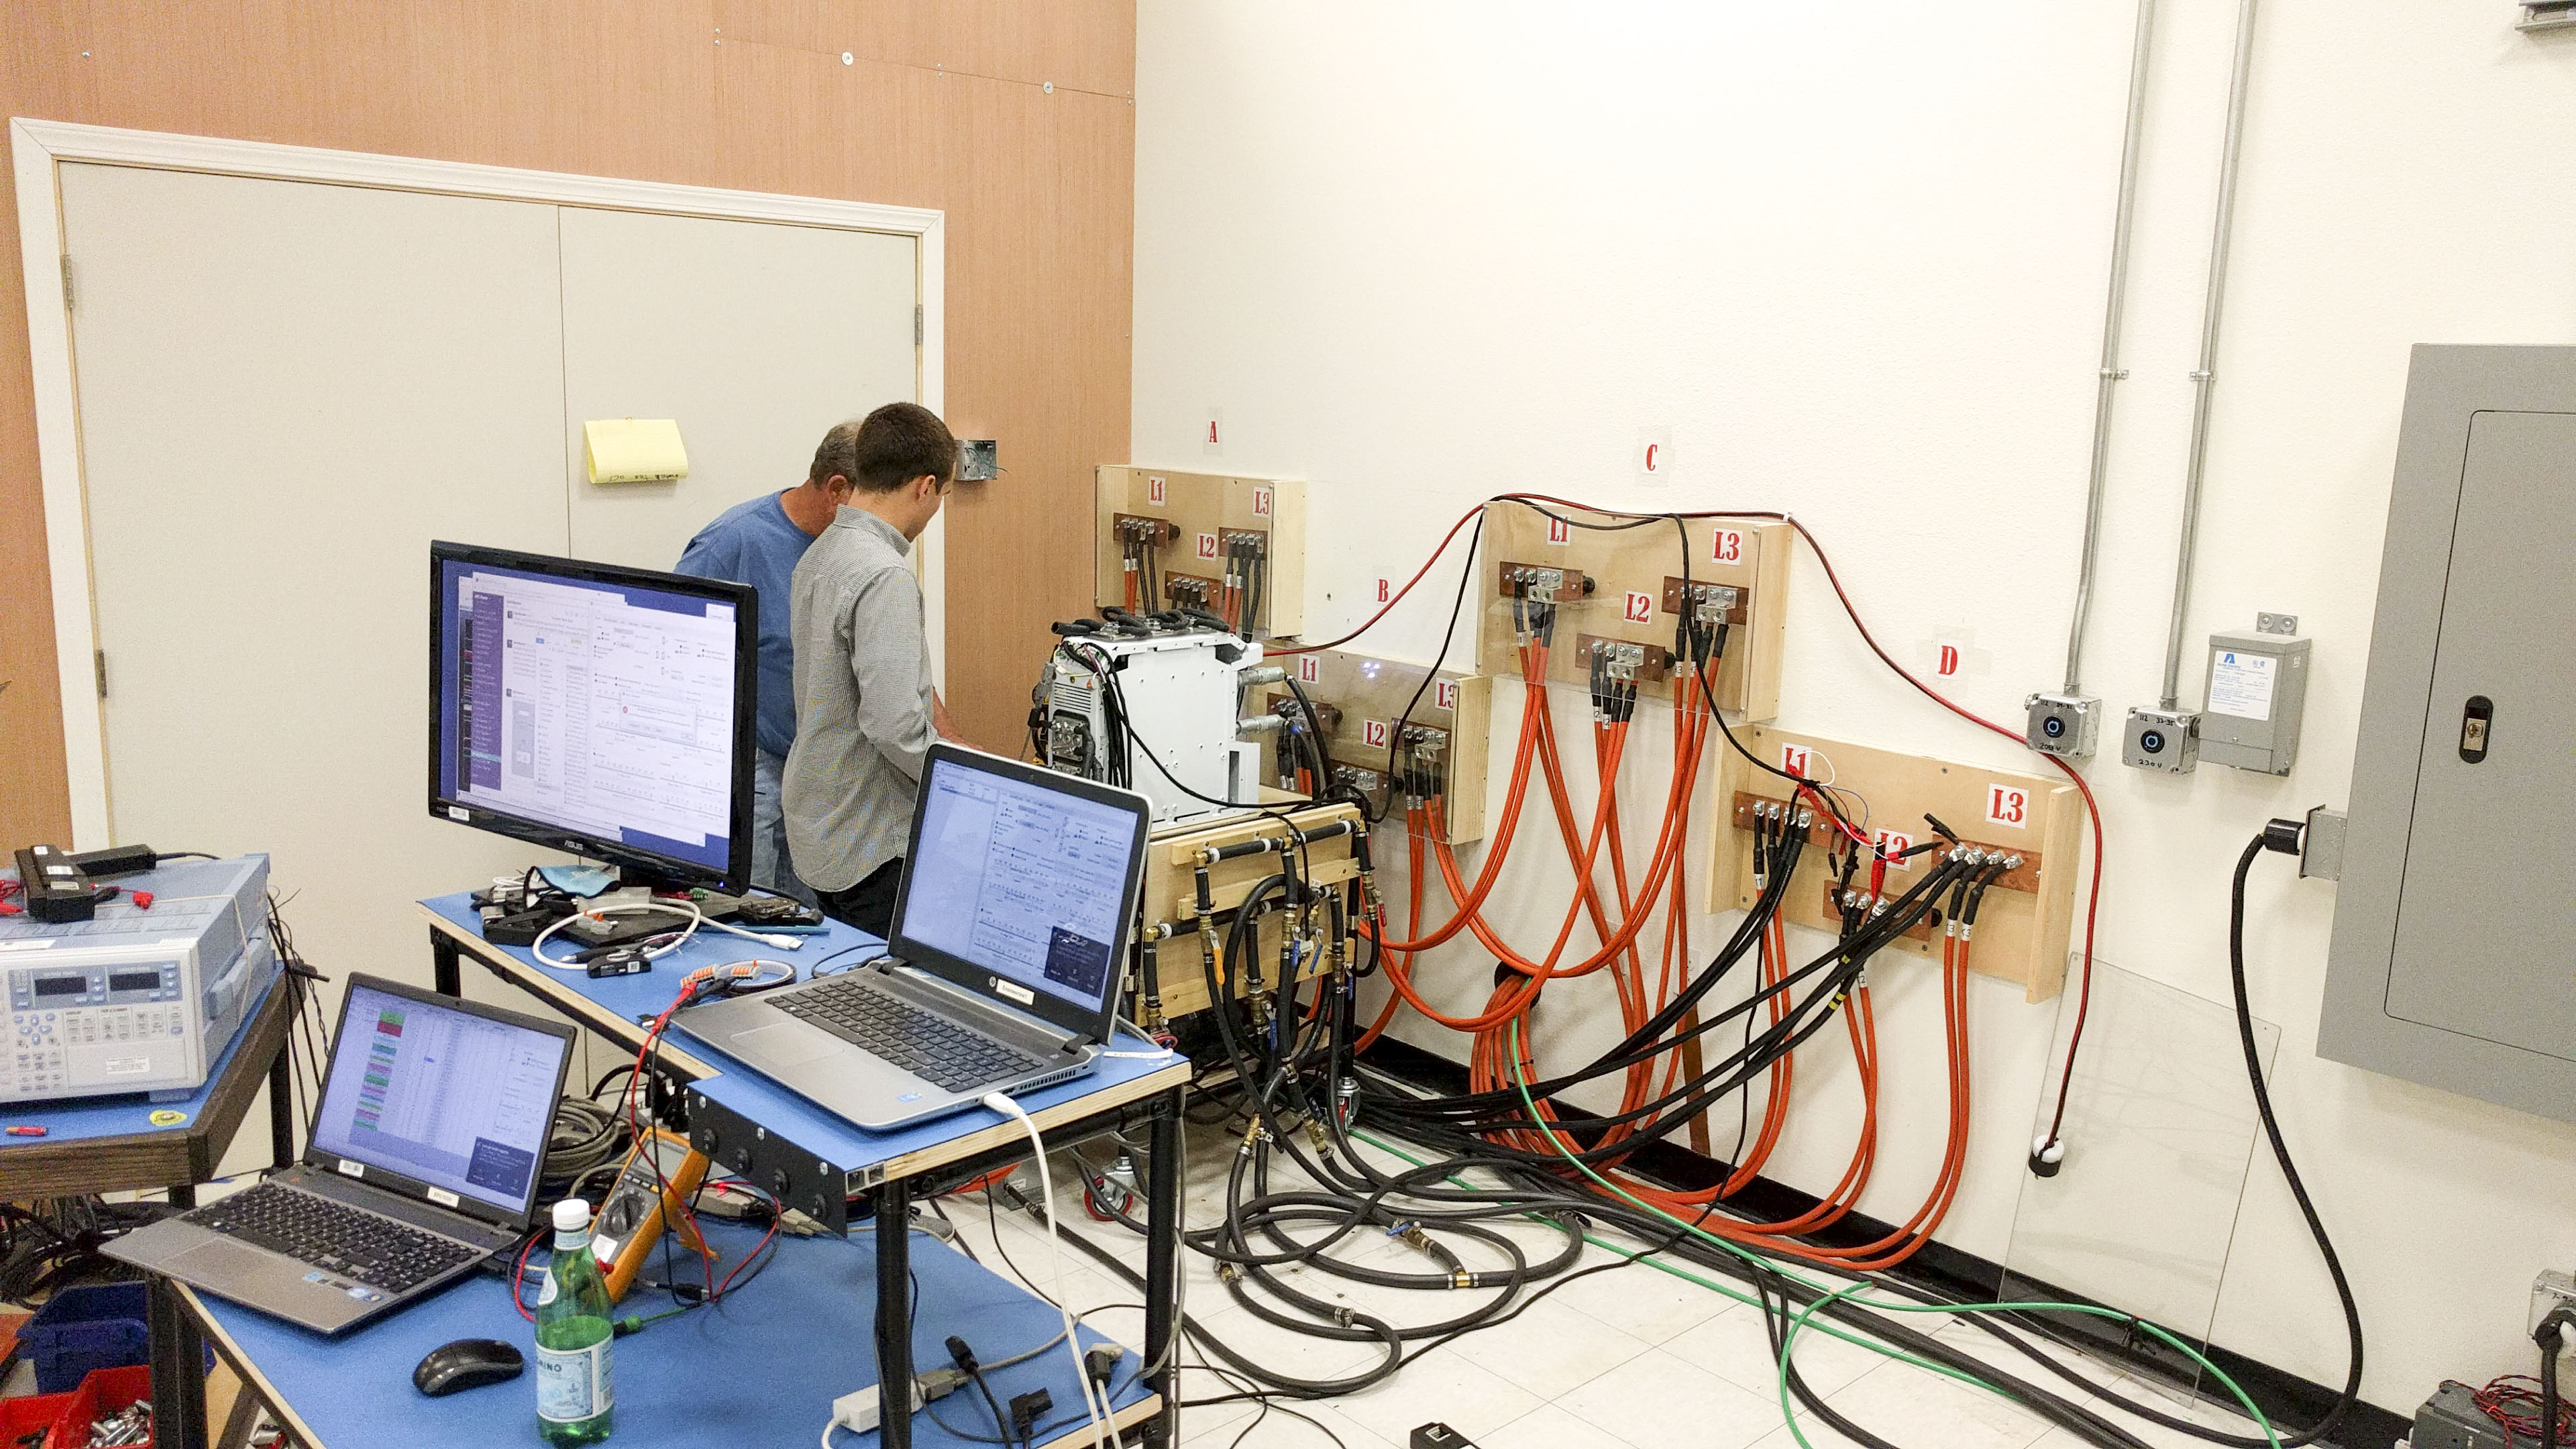 EPC Power testing controllers at full power lab